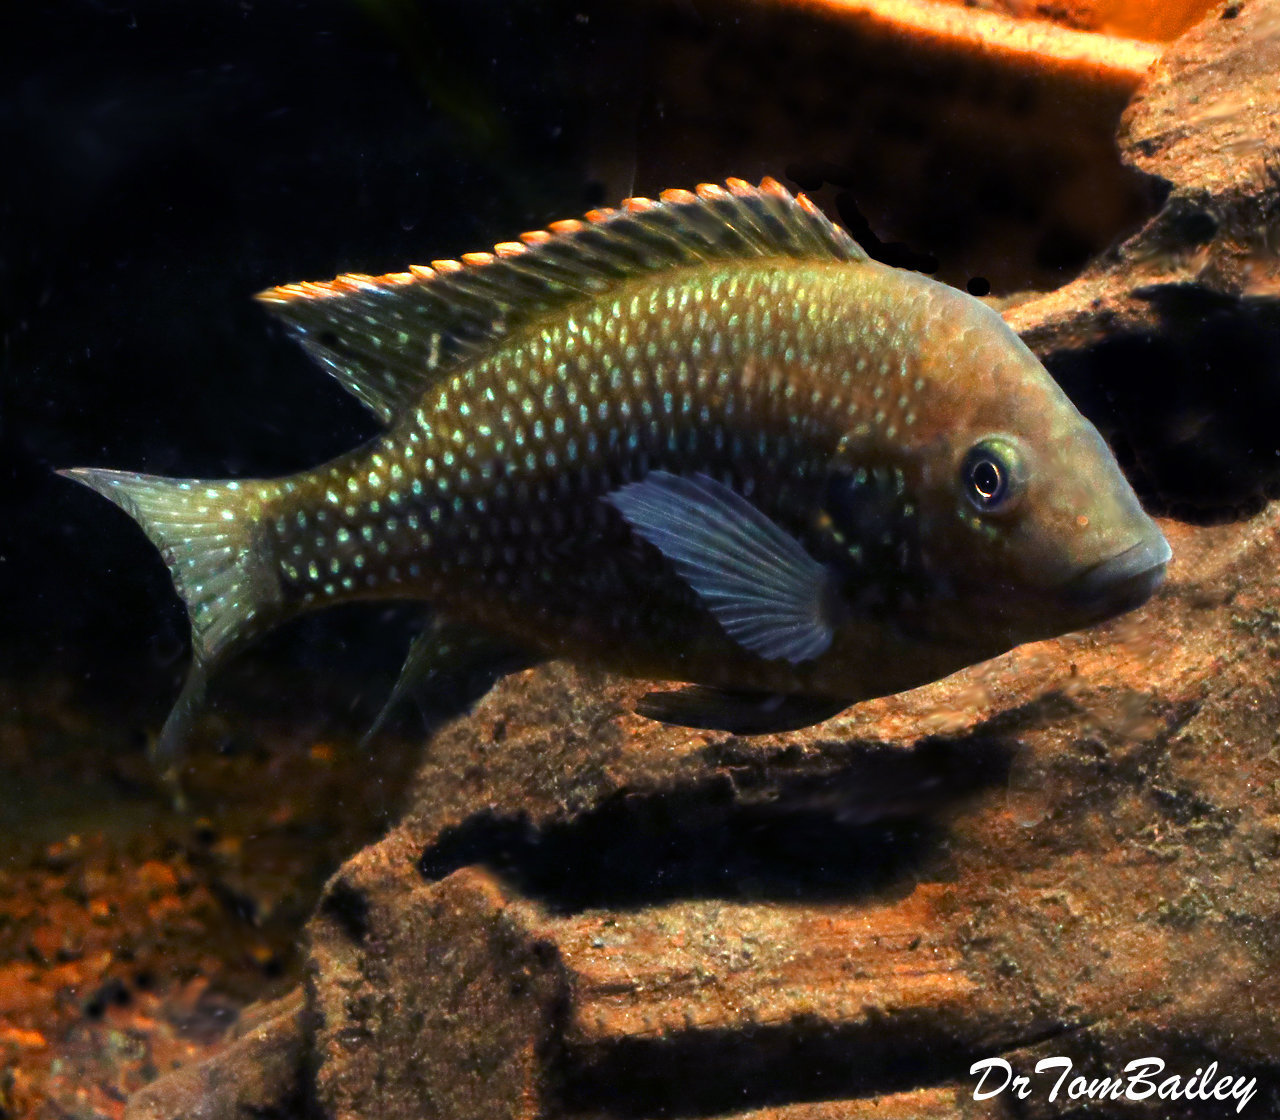 "Premium, Very Rare, New, Danakilia Shukoray Cichlid, 2.5"" to 3"" long, from Eritrea in Northeastern Africa"